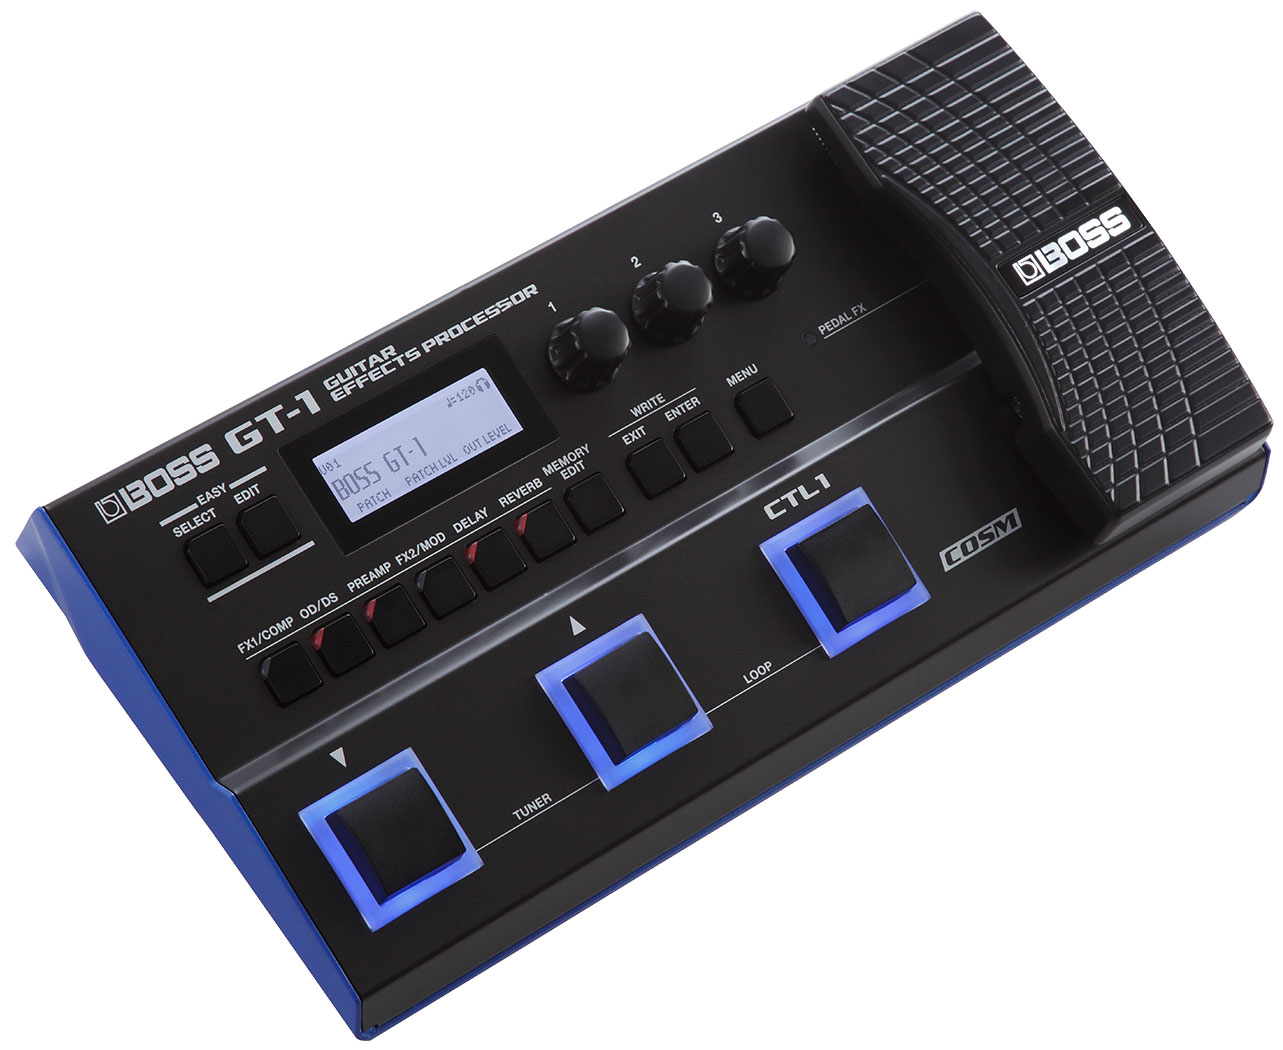 BOSS/Guitar Effects Processor GT-1 マルチ・エフェクター【ボス】